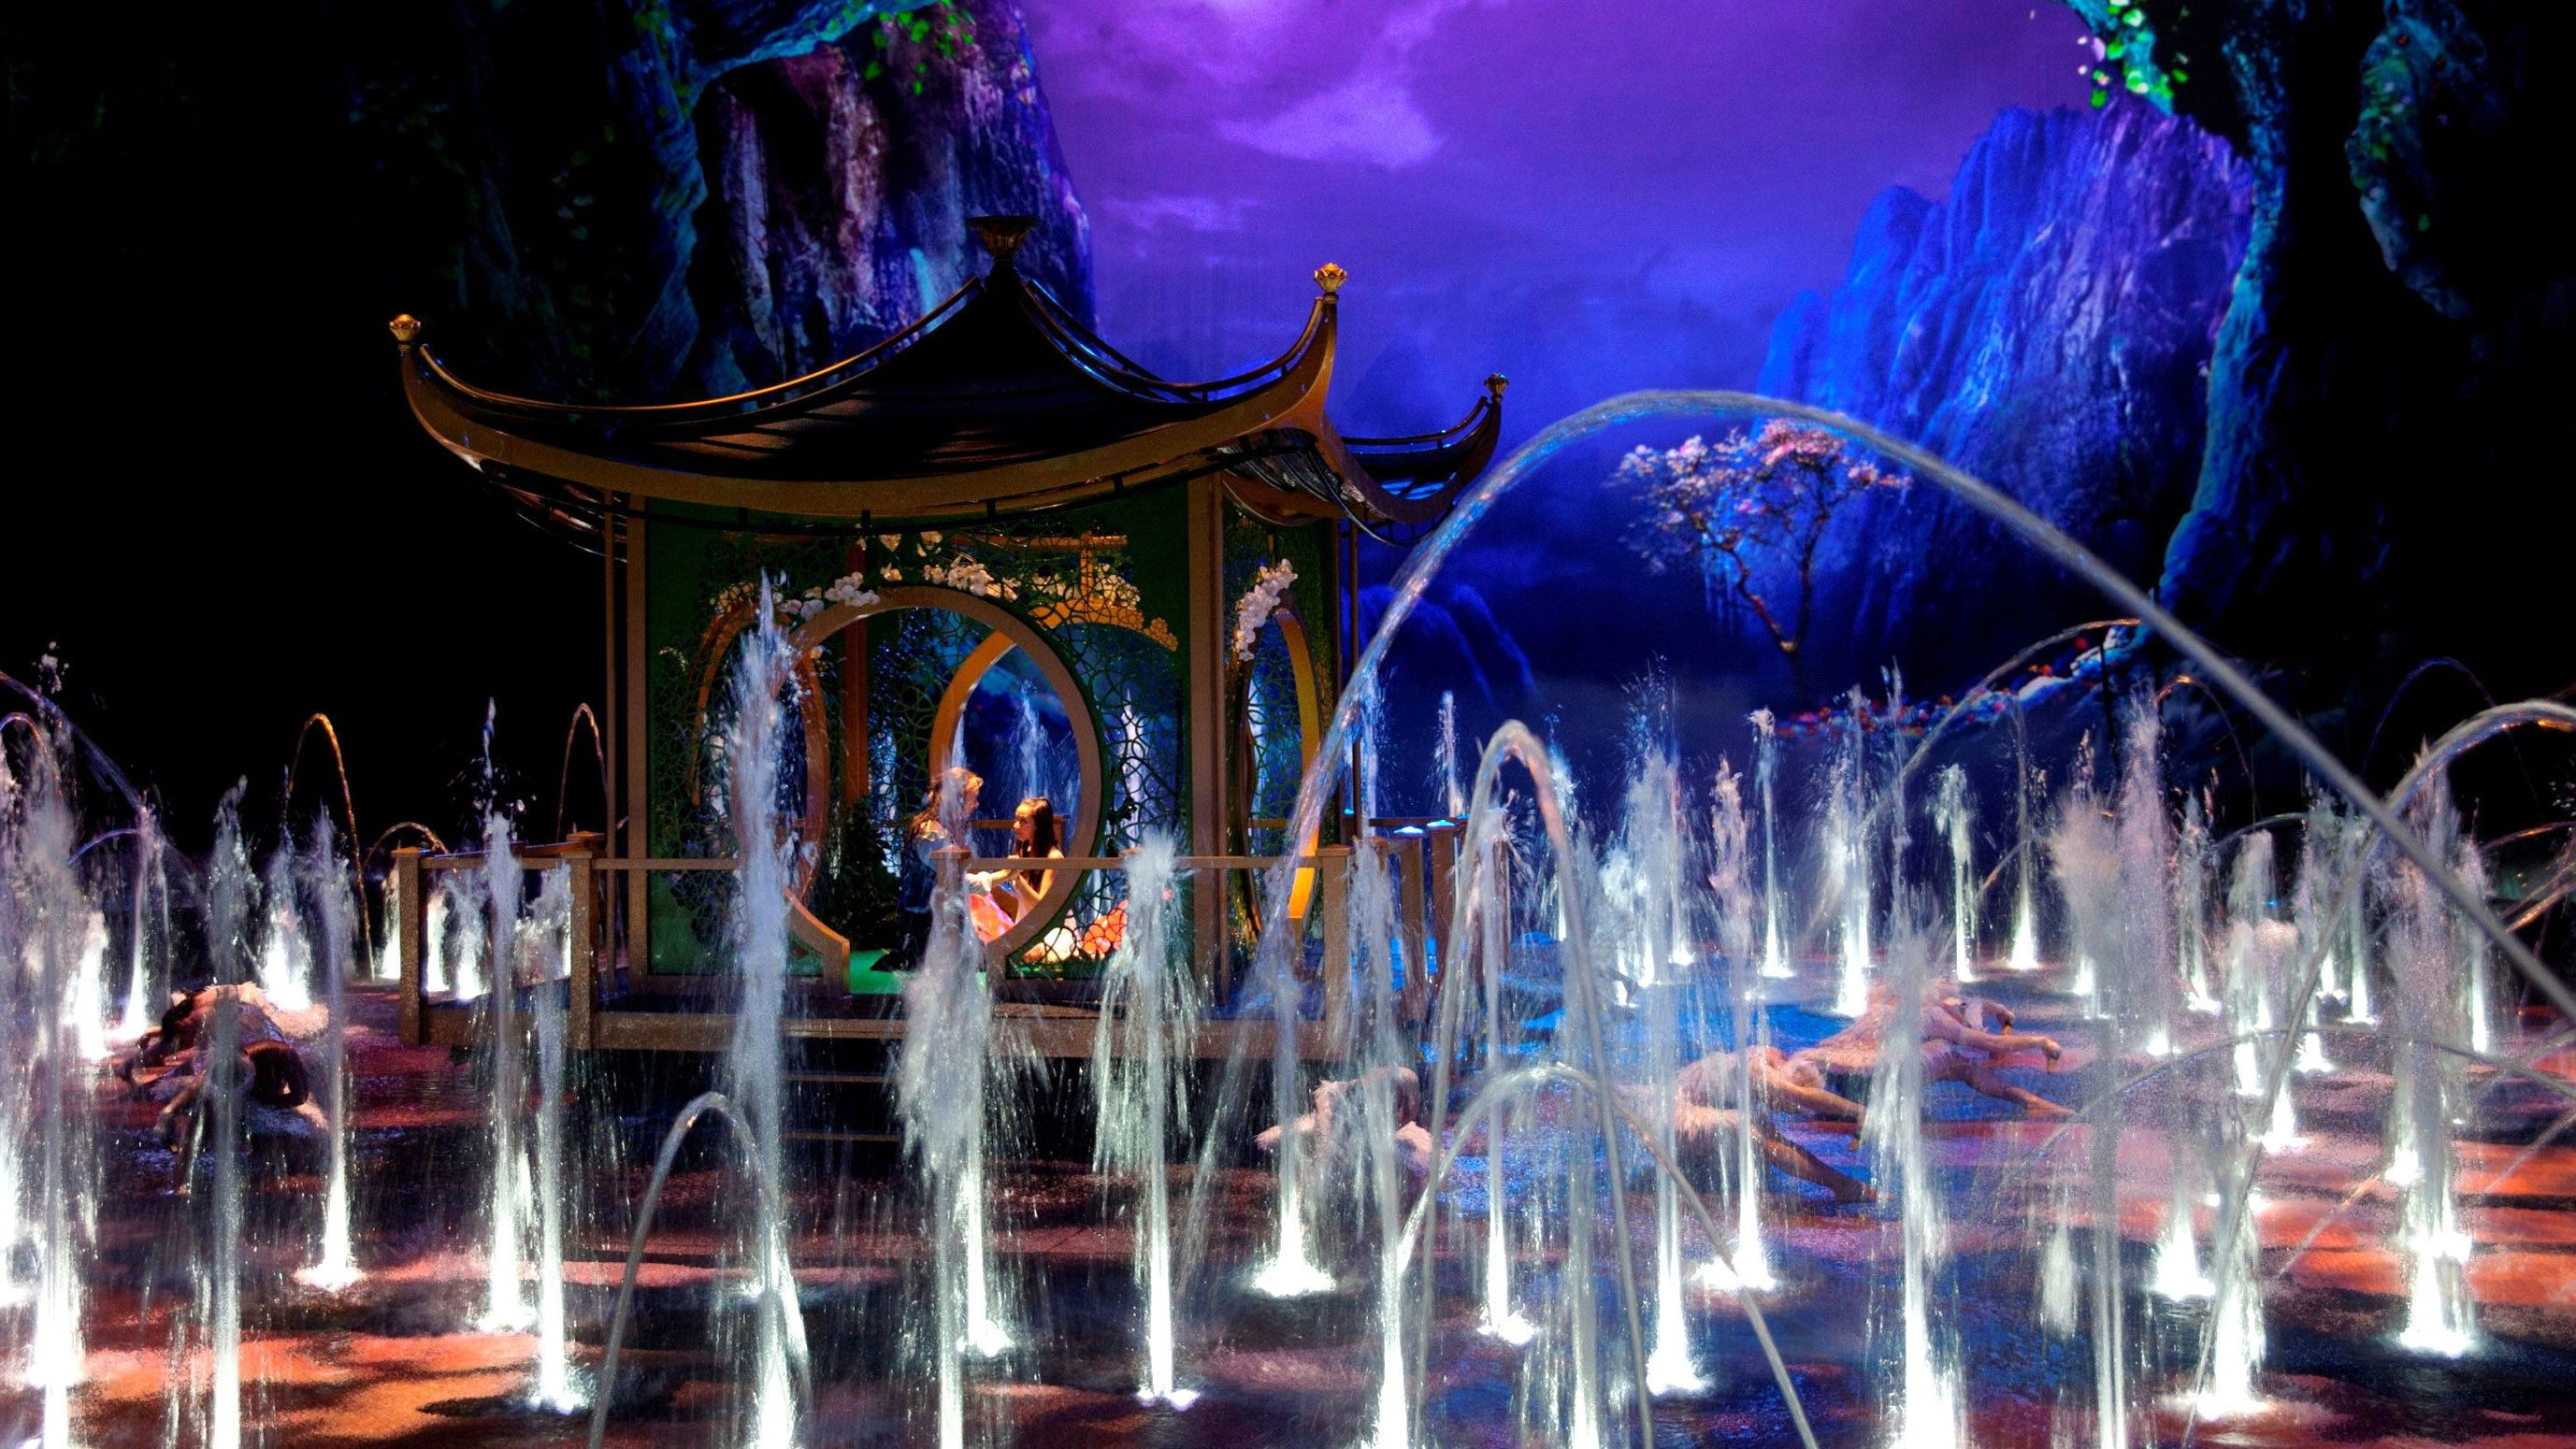 many water fountains spouting water surrounding performers